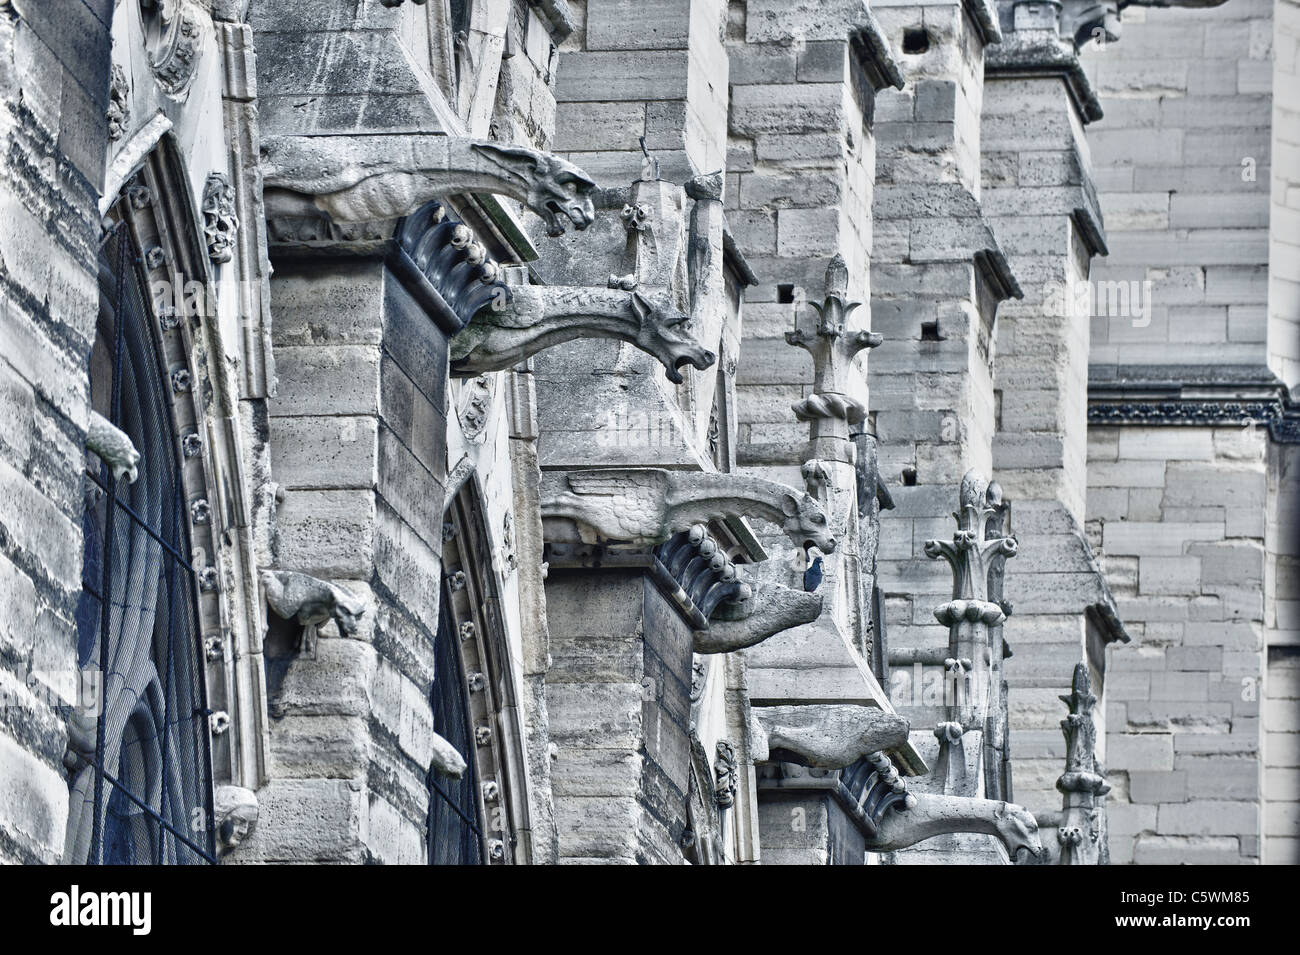 Gargoyles of Notre Dame cathedral - HDR image - Stock Image